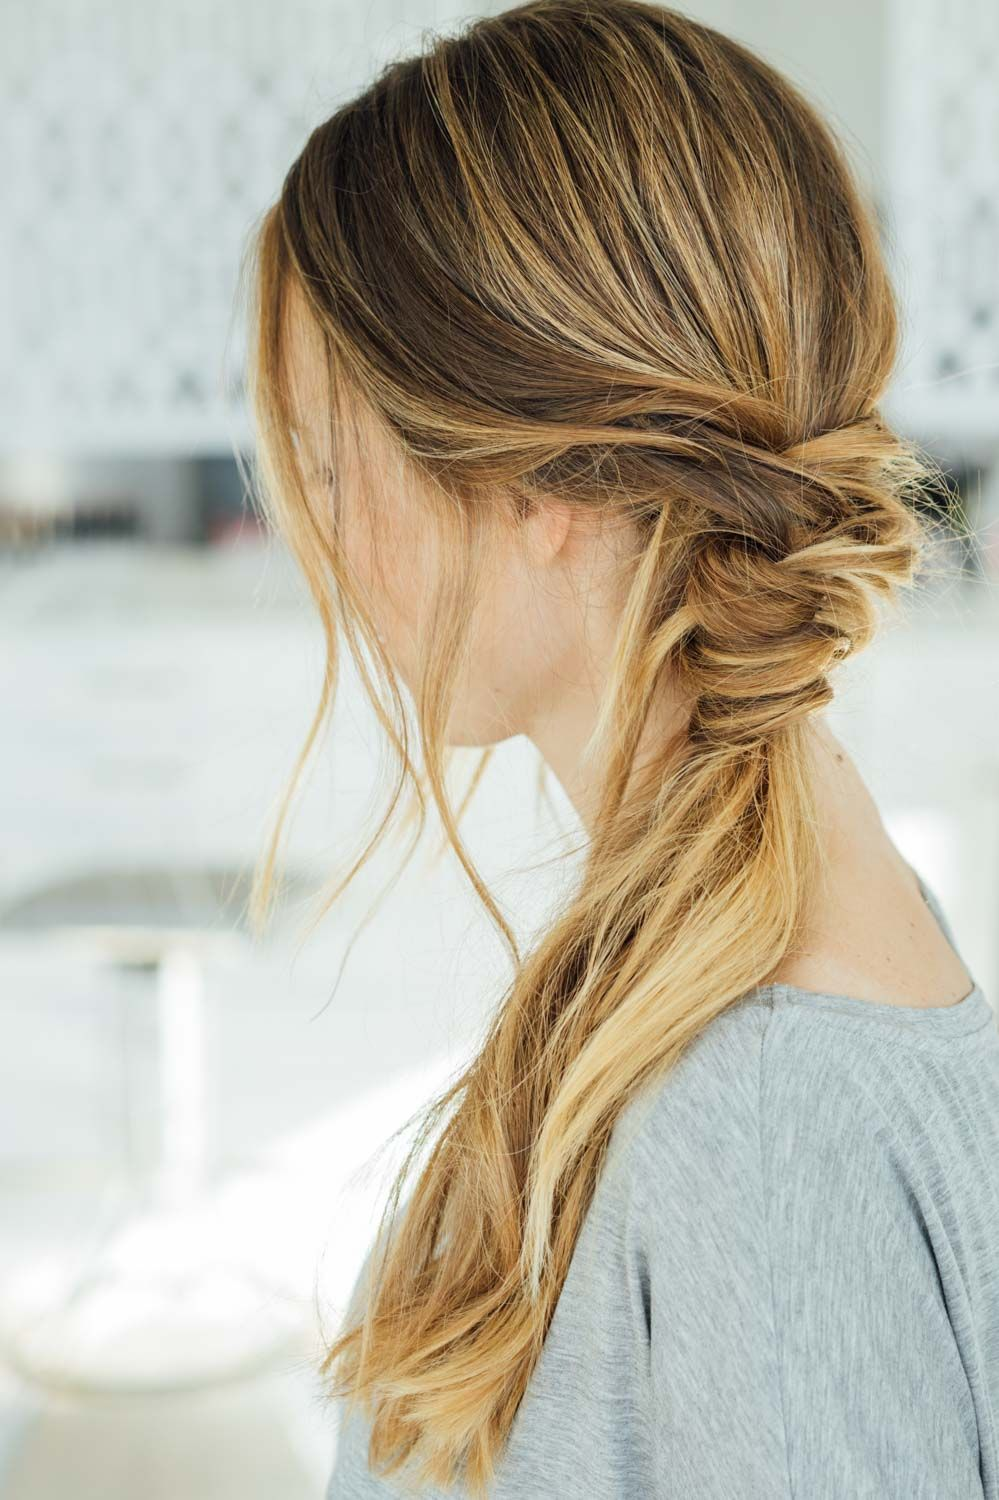 16 Easy Hairstyles for Hot Summer Days | Easy hairstyles, Messy ...